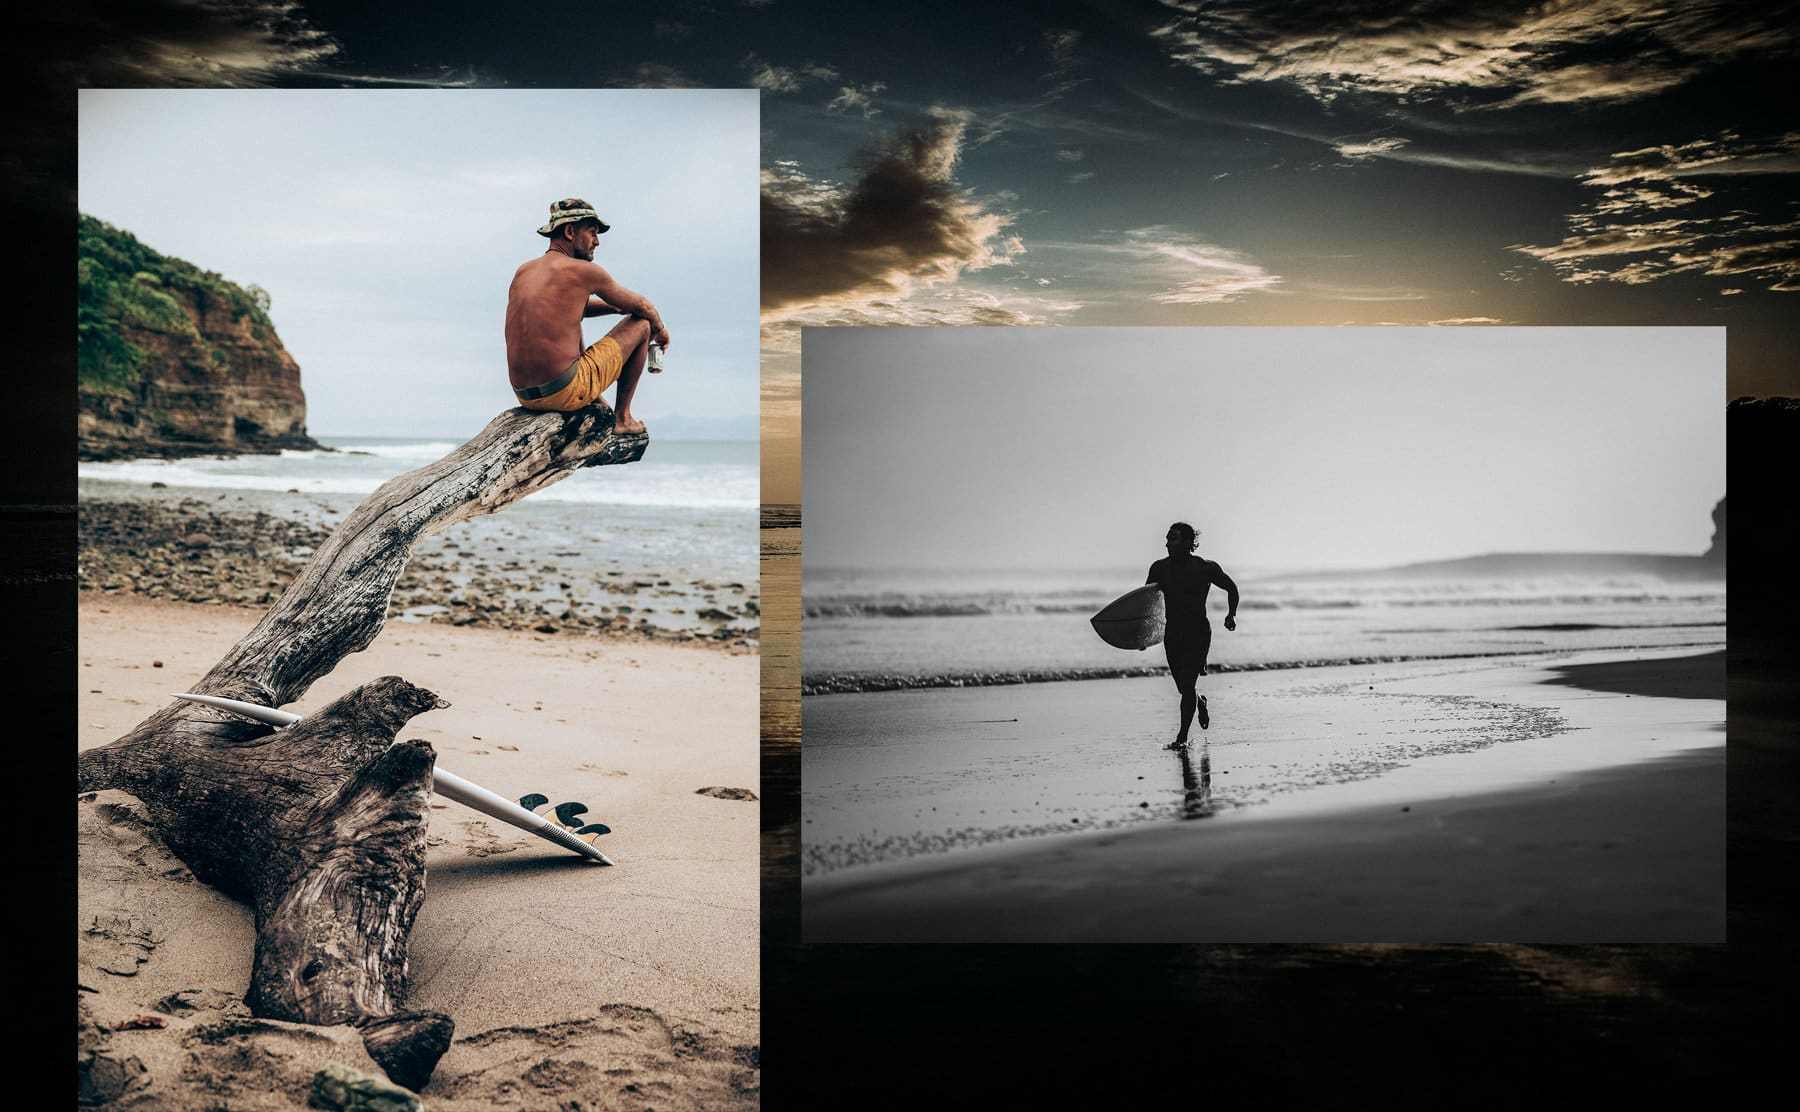 A collage of photos juxtaposes a black-and-white photo of Jimmy Chin running on a beach while holding a surfboard with a color photo of Jeff Johnson sitting on a large piece of driftwood on the beach. The two images are placed atop a color photo of a beach in Nicaragua during sunset.